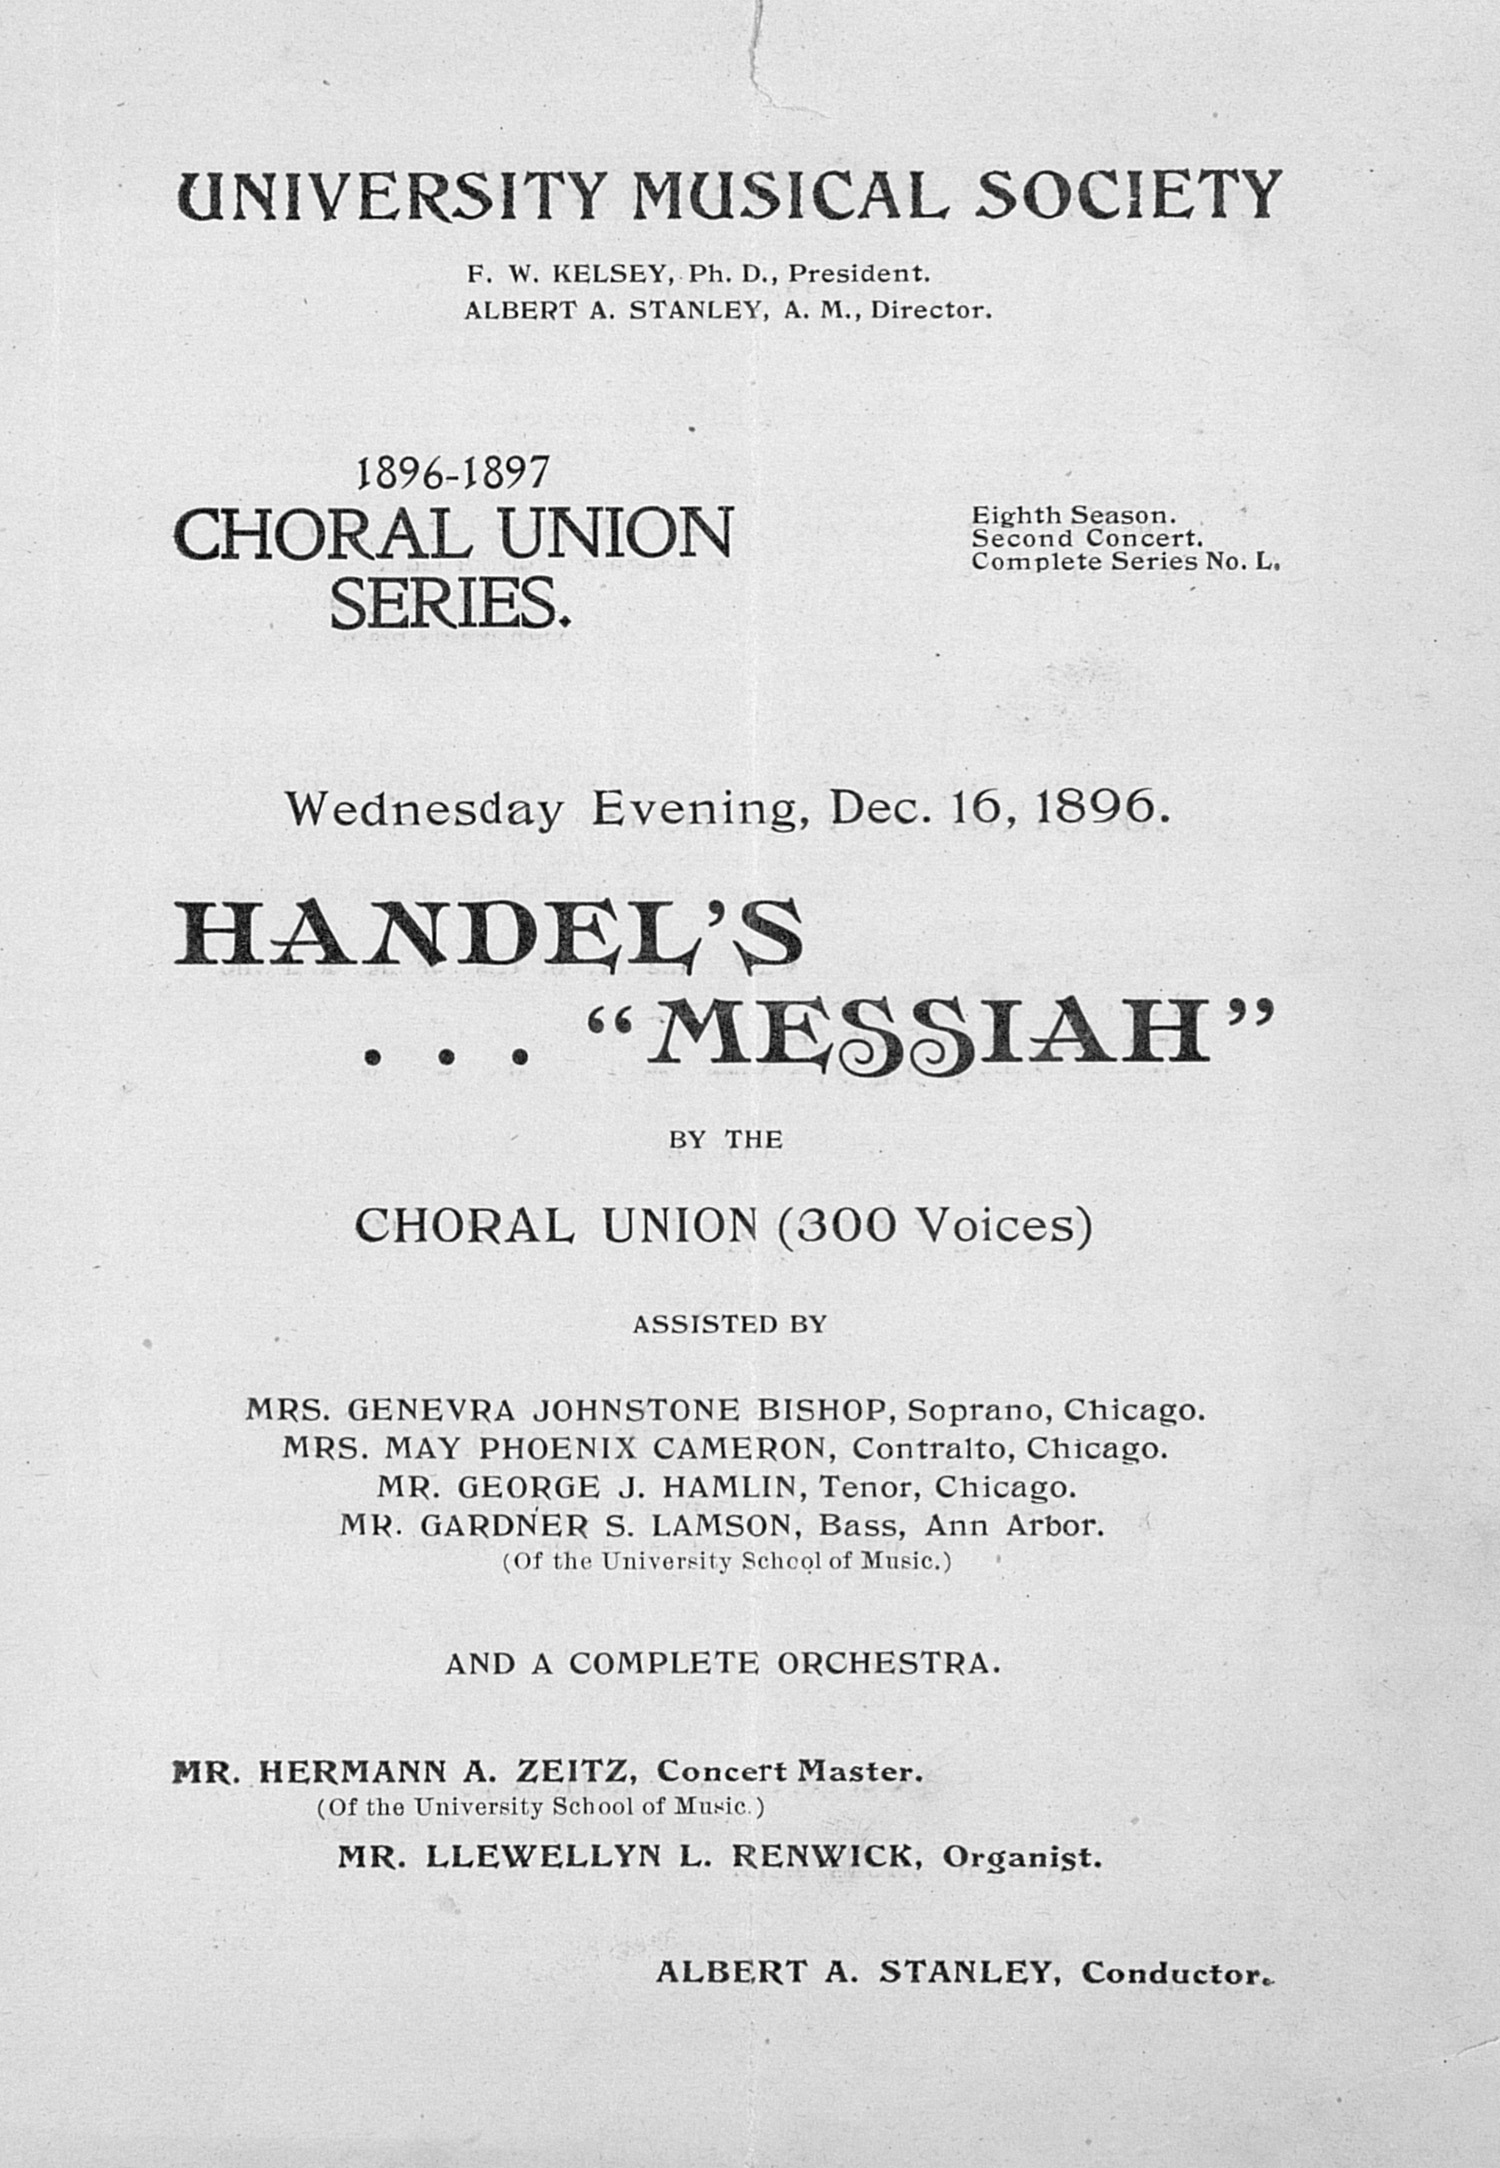 "UMS Concert Program, Dec. 16, 1896: Handel's ""messiah"" -- Choral Union image"